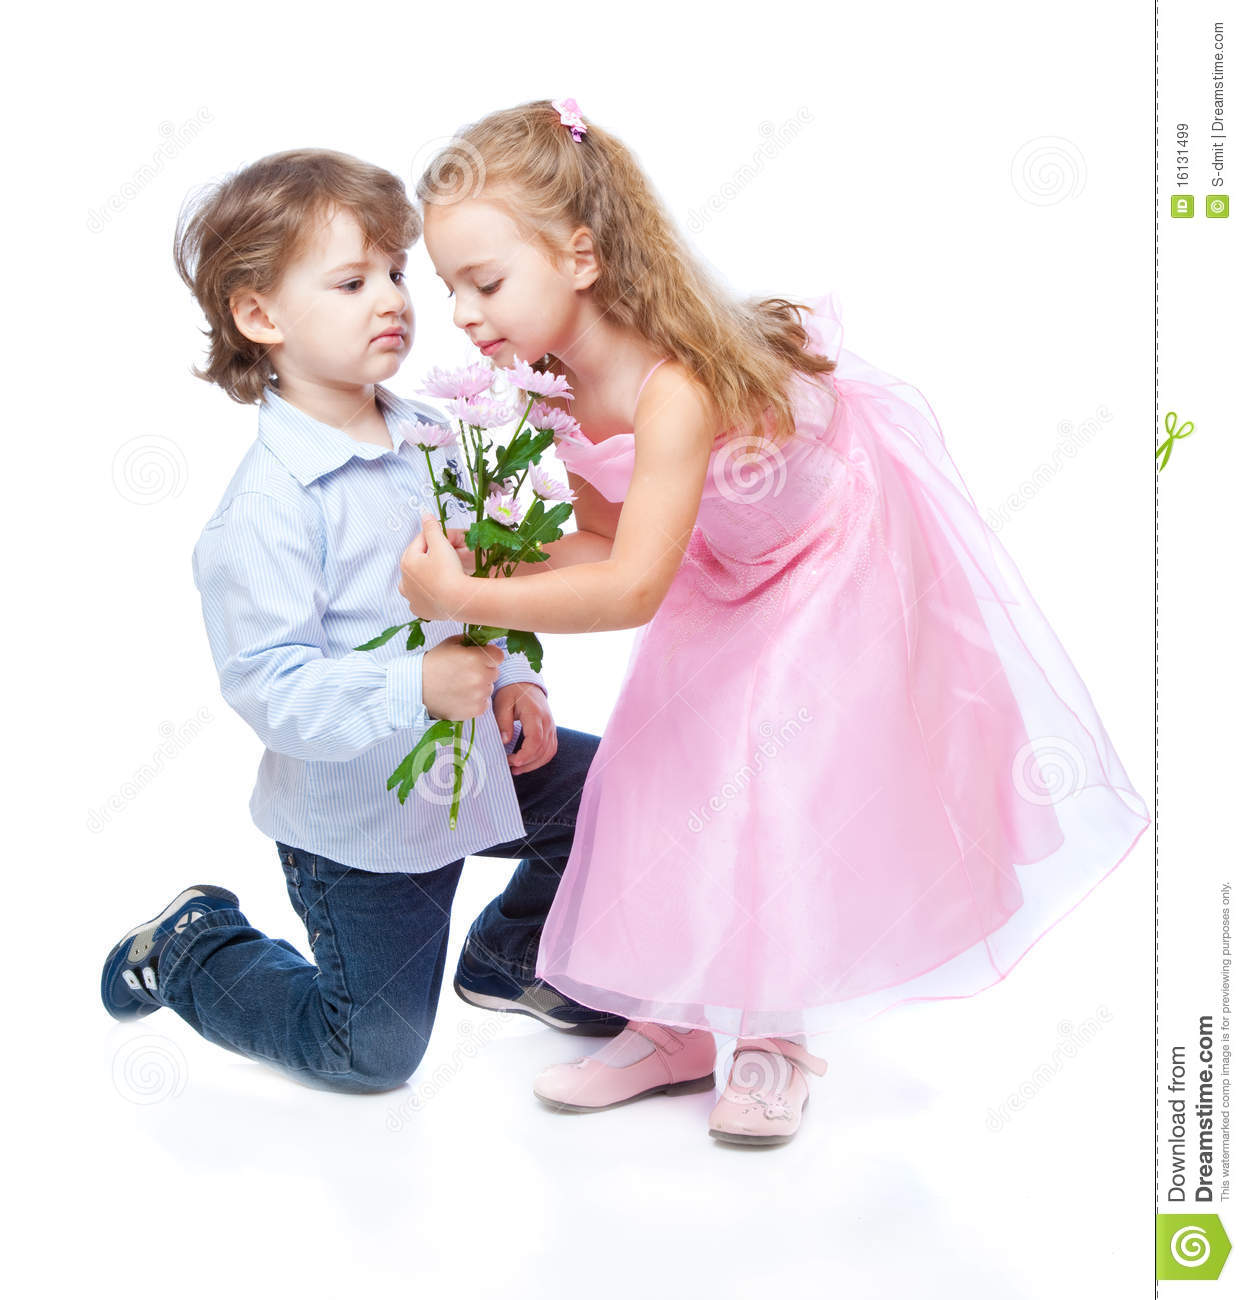 Love Wallpaper Girl Nd Boy : Little Boy And Girl In Love Royalty Free Stock Images ...